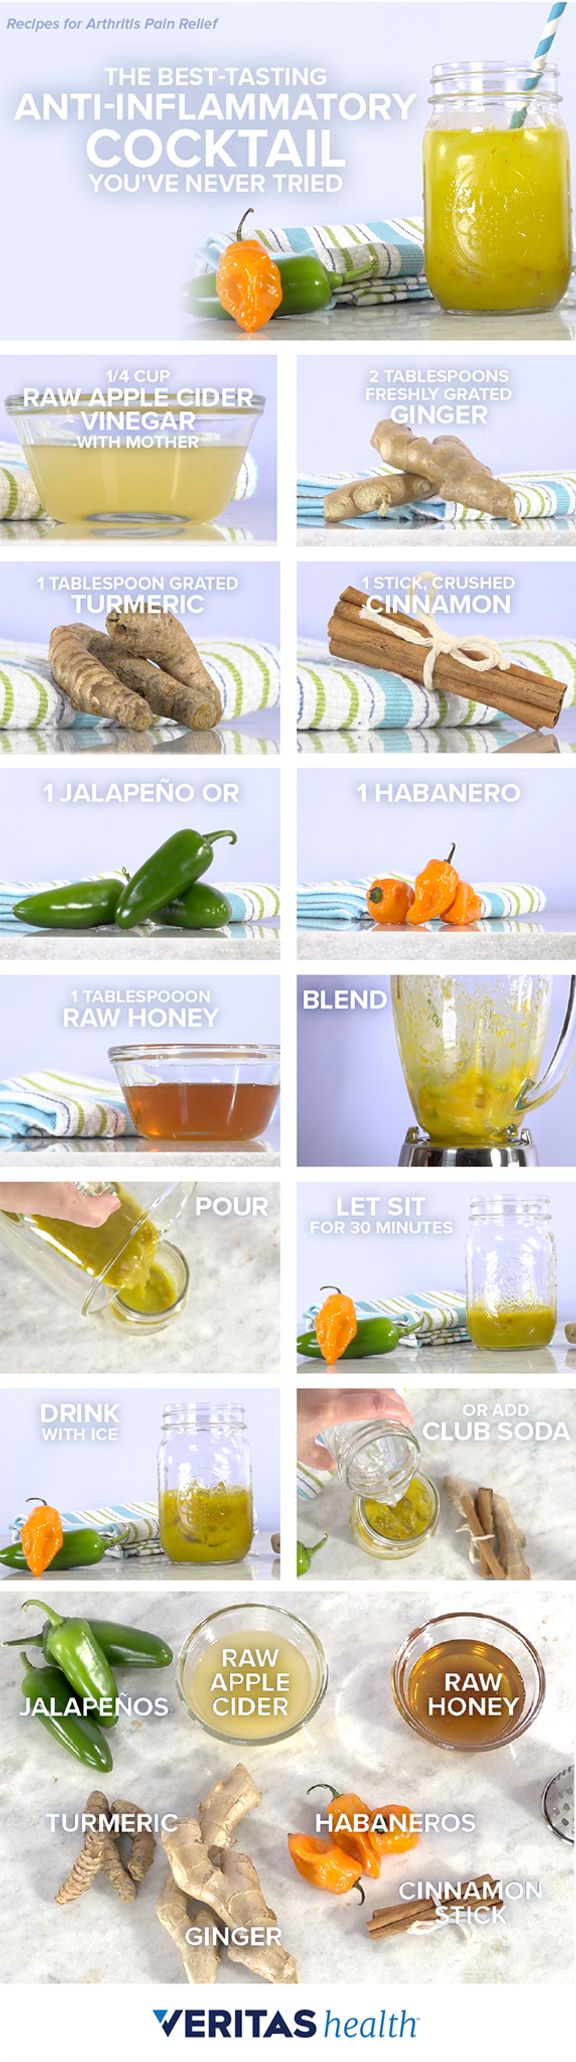 The Best Tasting Anti-Inflammatory Cocktail You've Never Tried